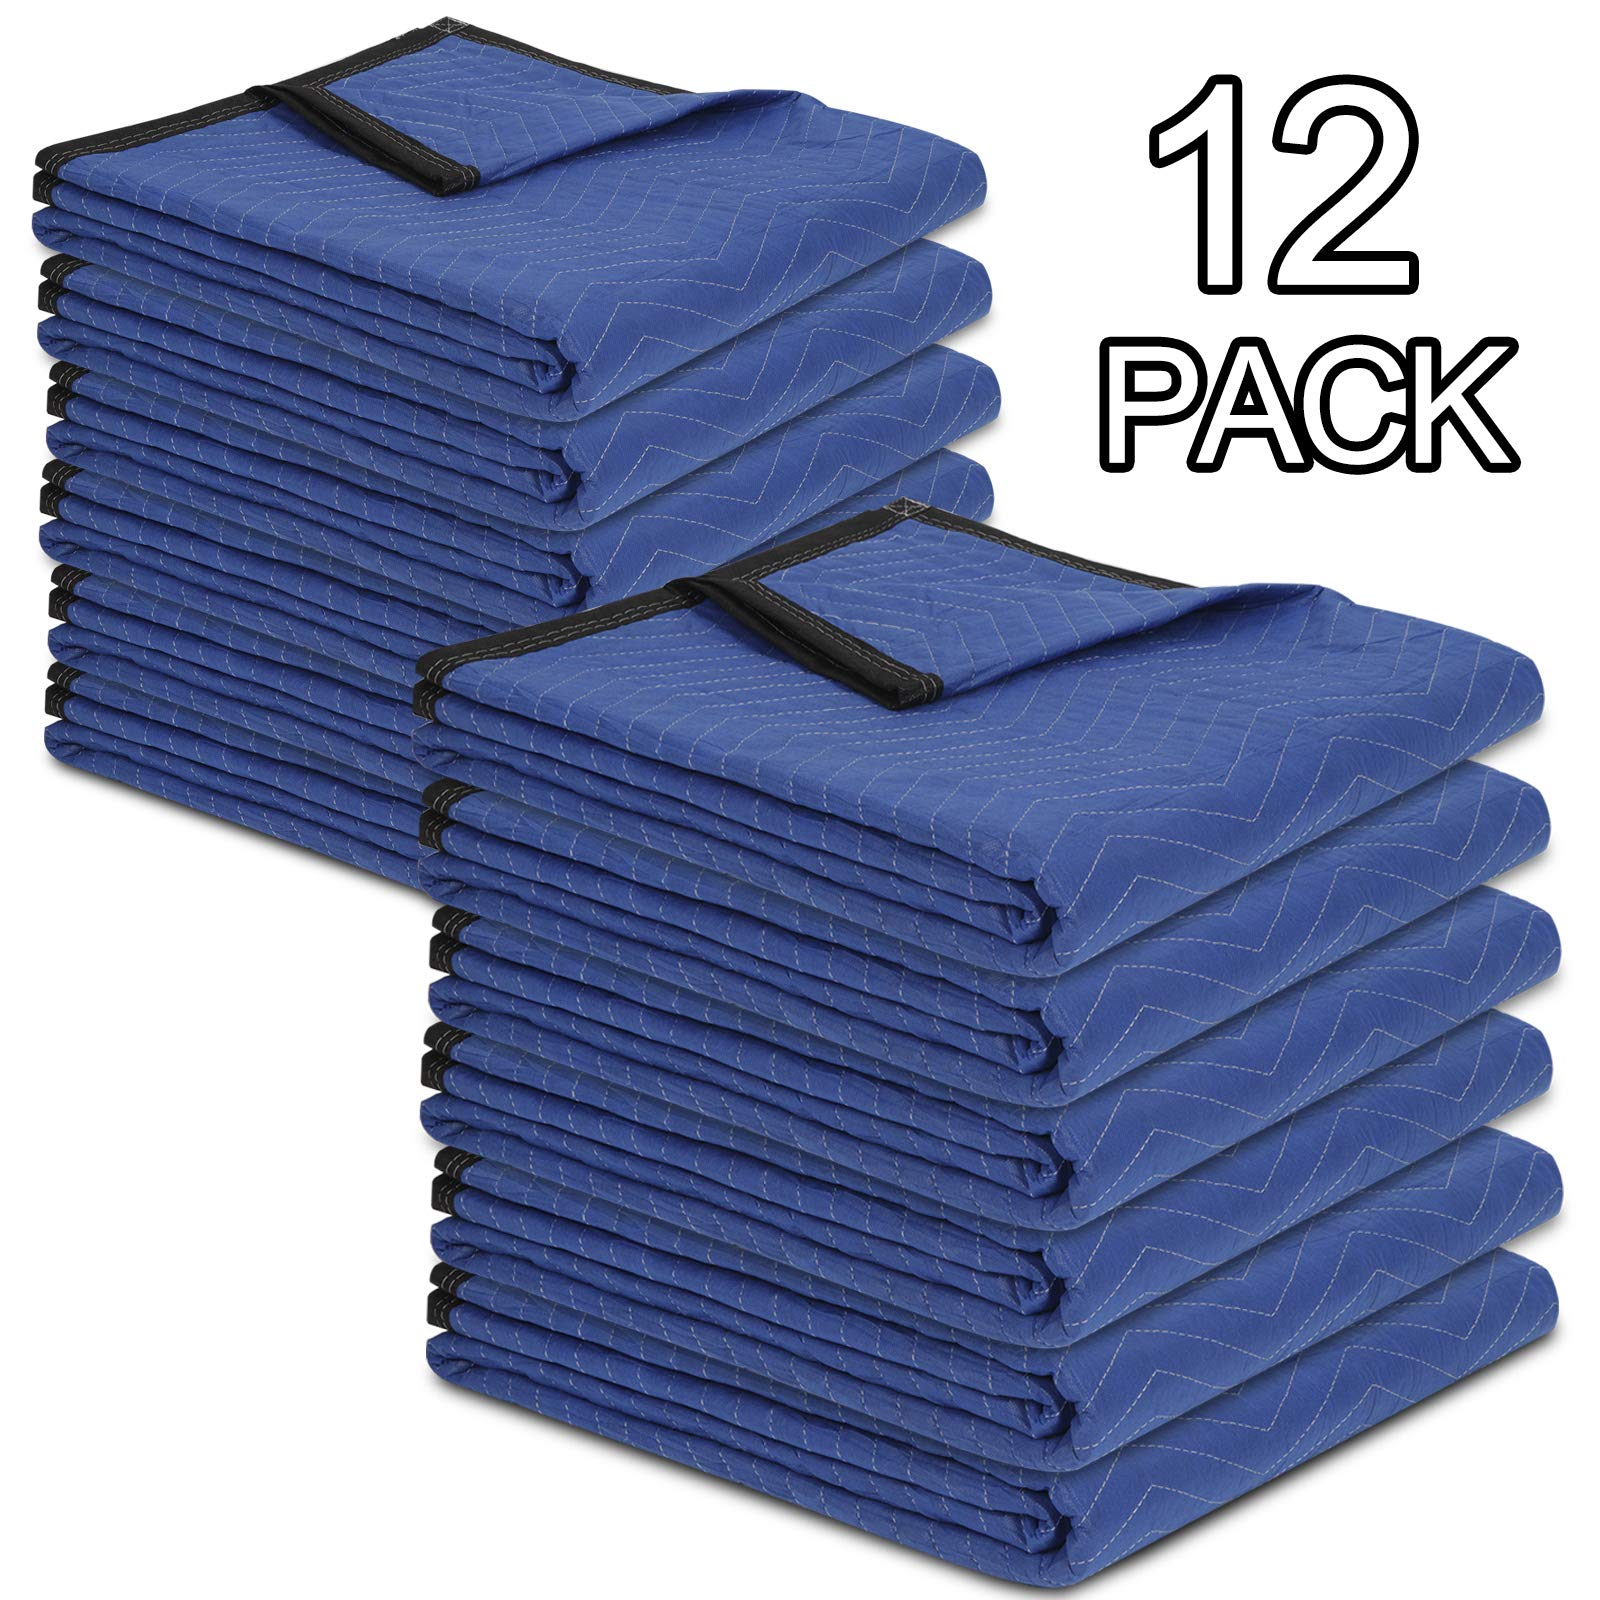 HomGarden 12 Moving & Packing Blankets - 80'' x 72'' Professional Quilted Shipping Furniture Pads Multi Purpose Blankets by HomGarden (Image #7)